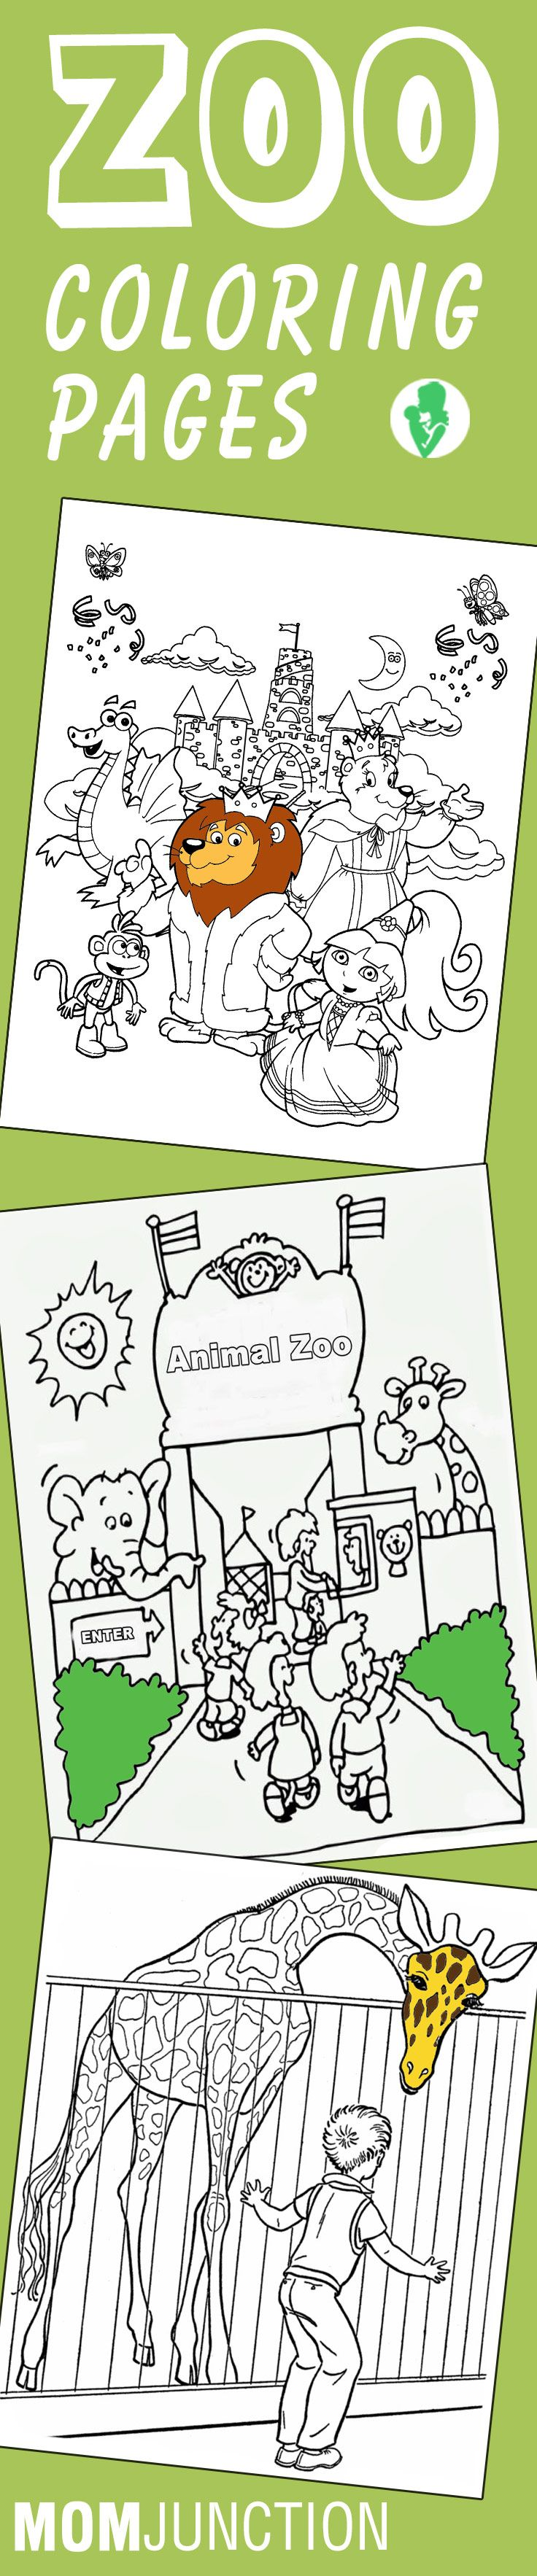 Top 10 Zoo Coloring Pages Your Toddler Will Love To Color